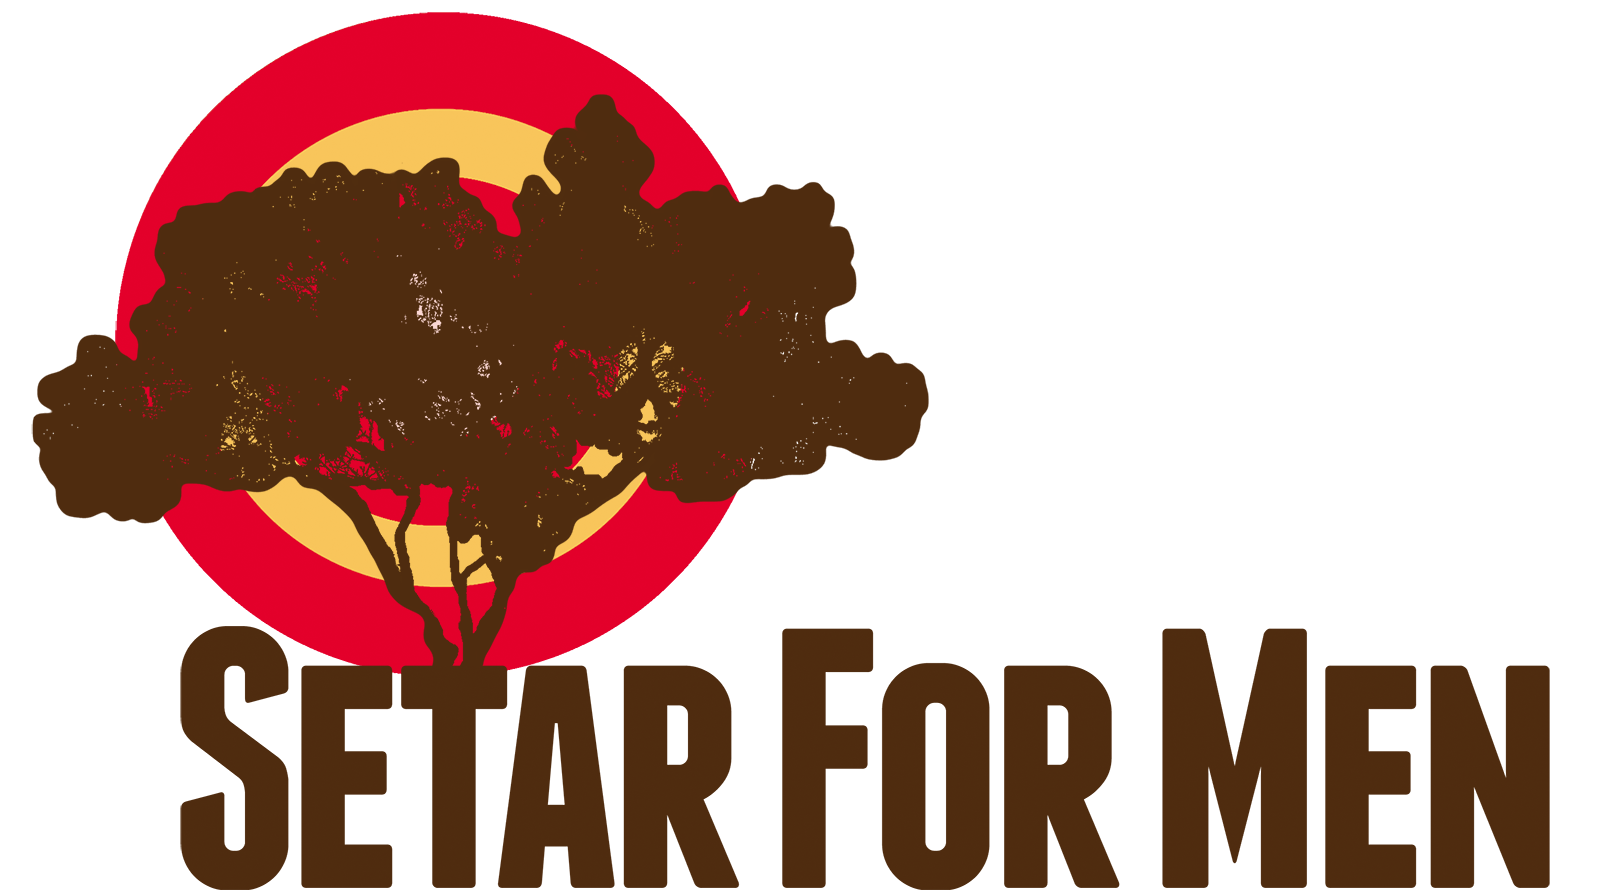 Setar for Men logo